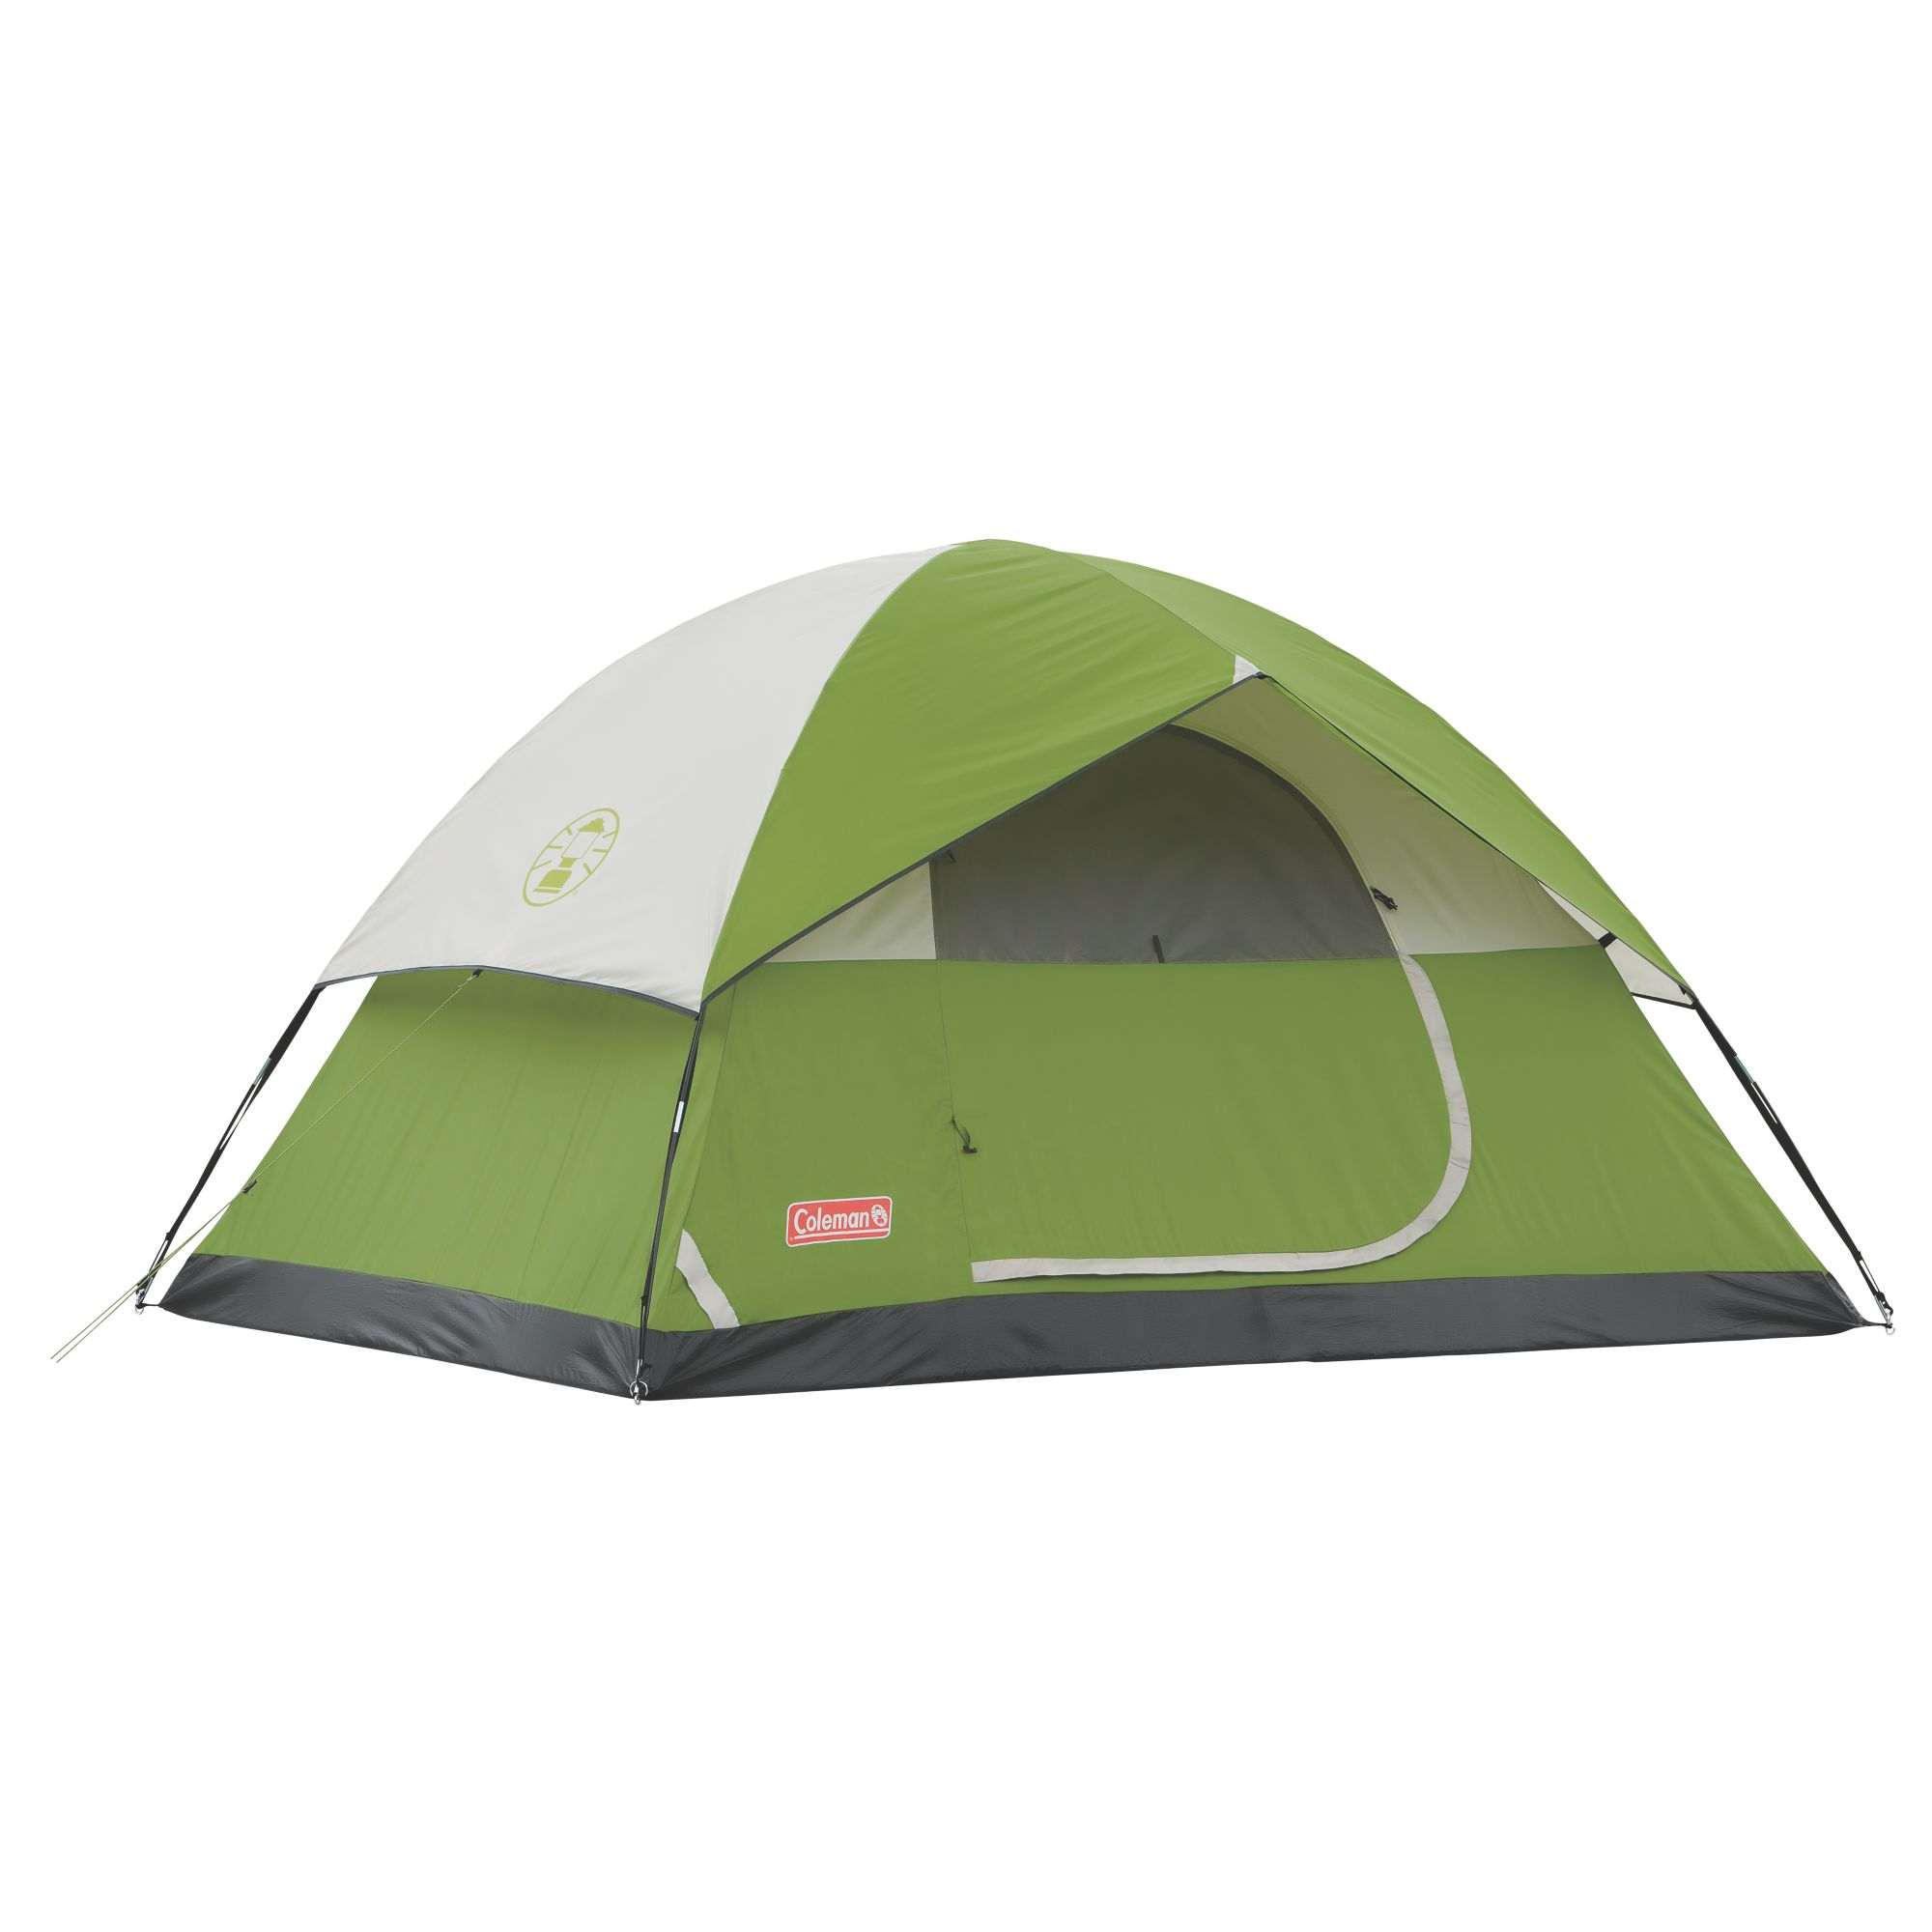 e man tent small large porch awesome a living family coleman acccaf archaicfair camping and log trail climbing ozark screen cabins alluring cefa dome this with best lodge has cabin full instant walmart f room bb front screened person